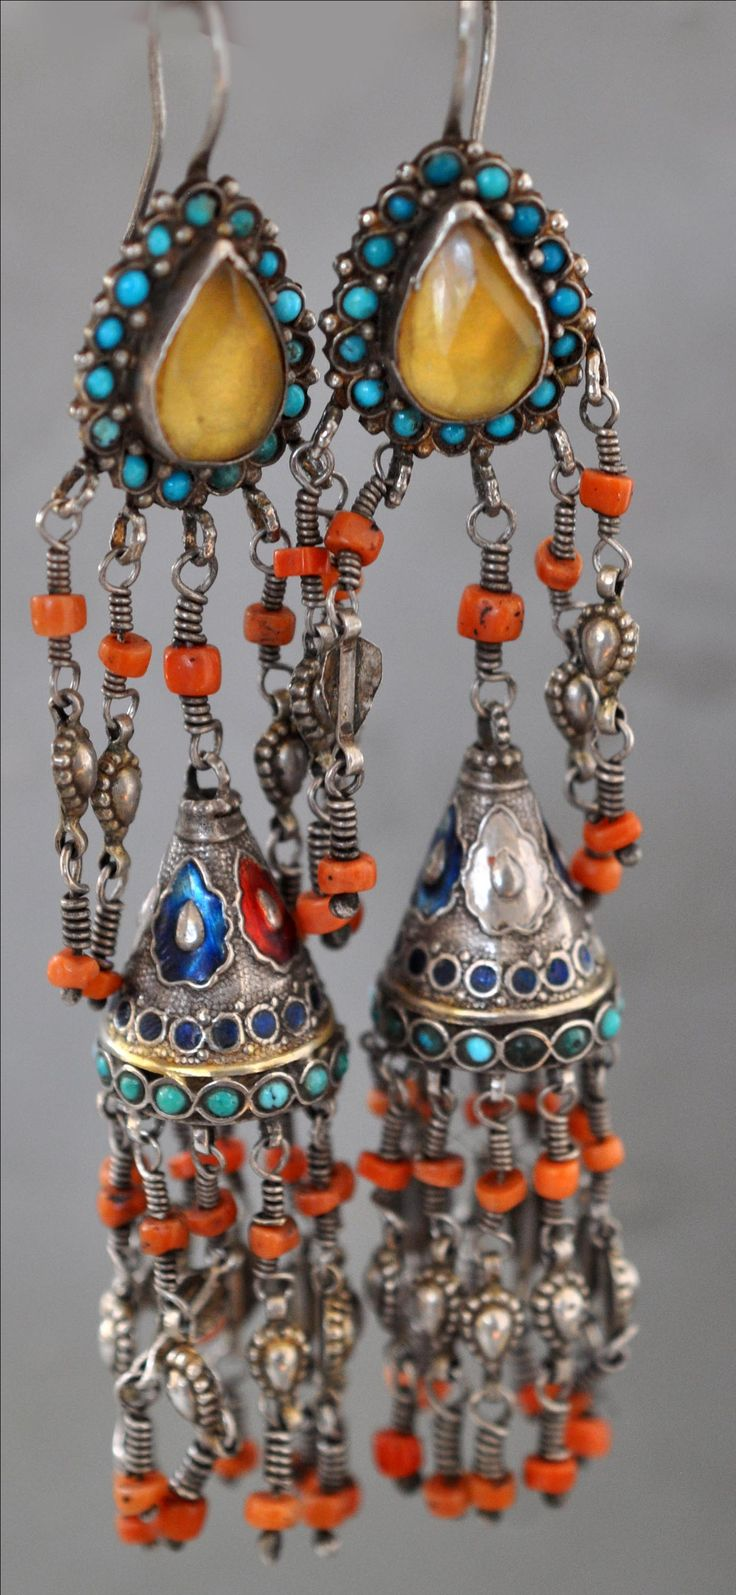 Uzbek gilt silver, enamelling, coral, turquoise with faux topaz earrings 19th c (private collection Linda Pastorino)